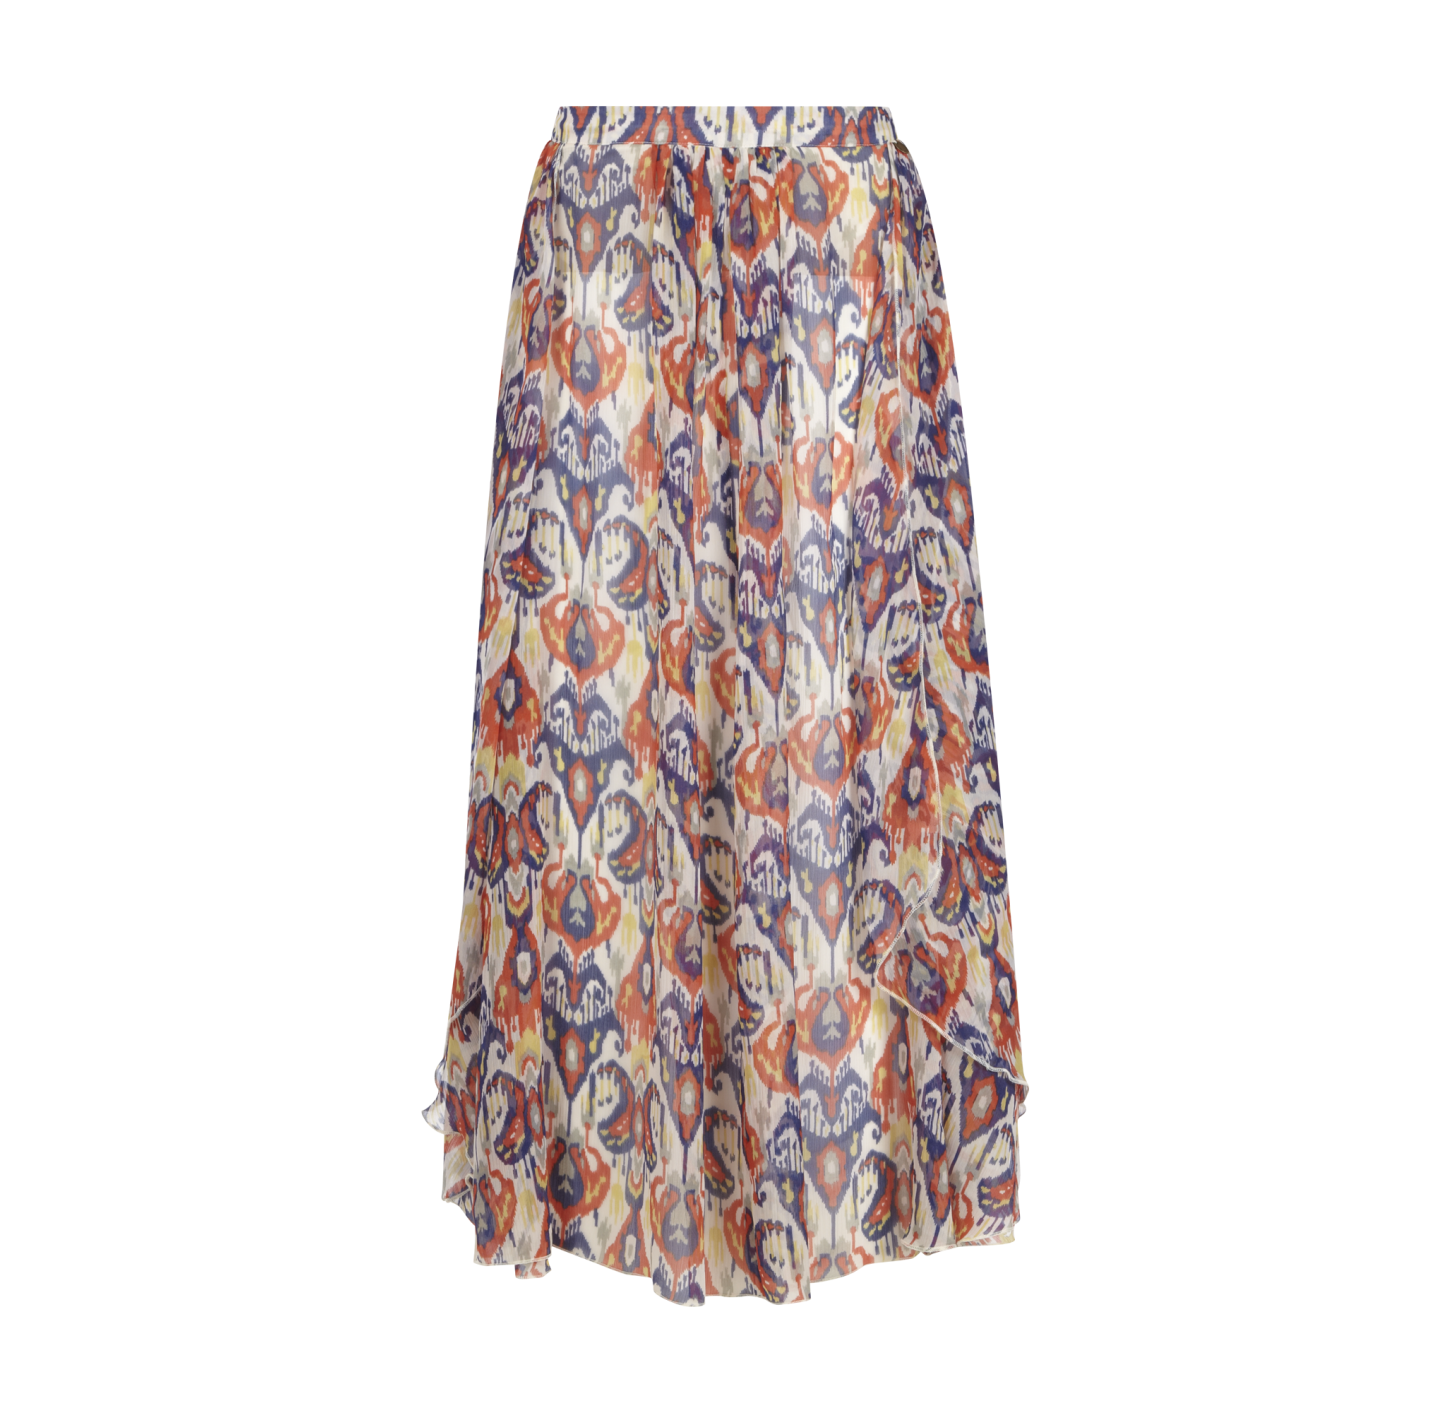 pepe jeans chiffon rock mit all over print muster - Jeans Mit Muster